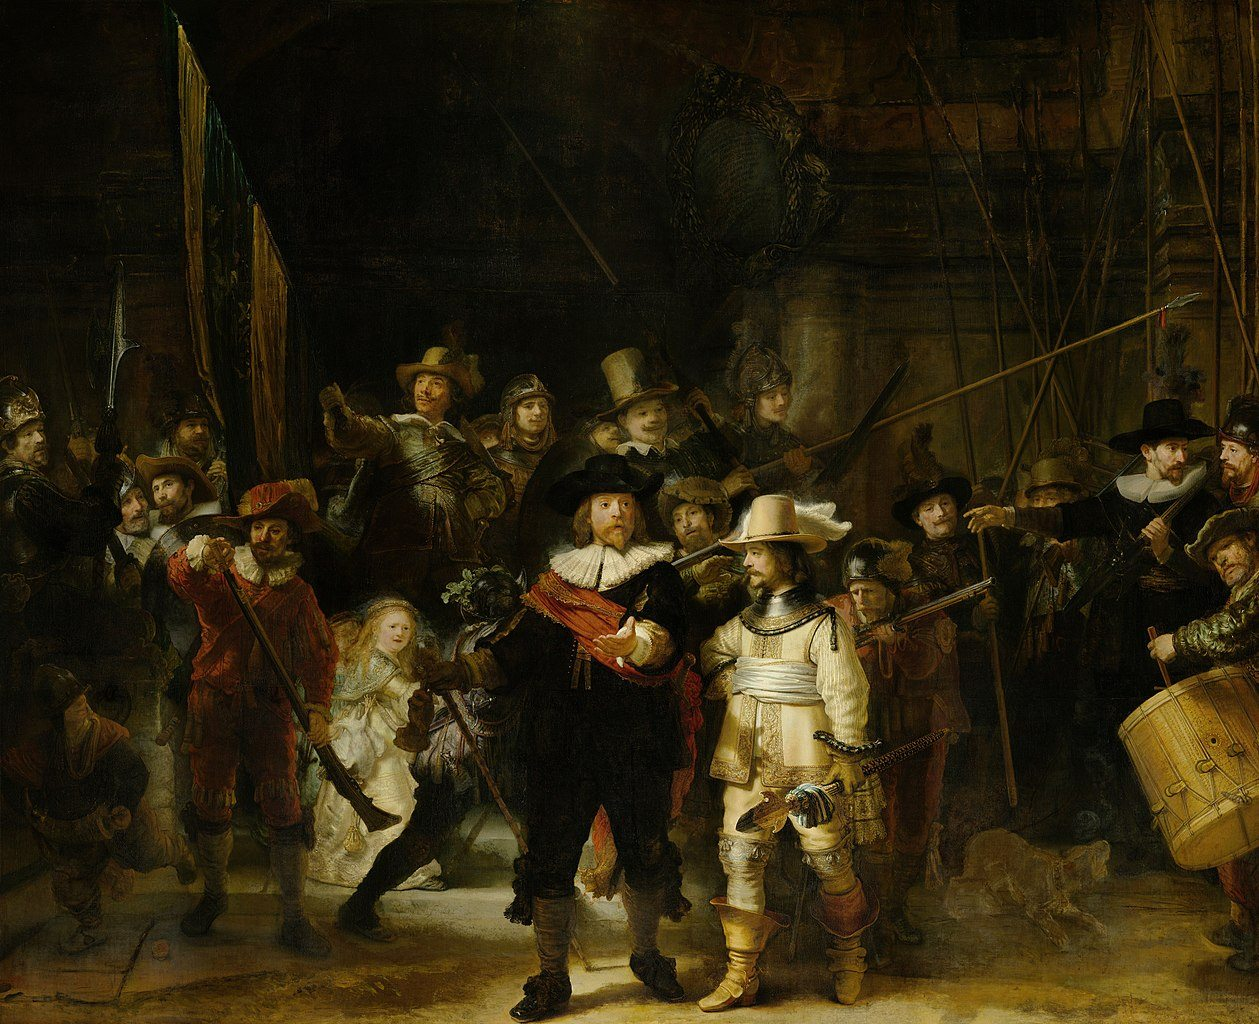 Historical records: The Night Watch, 1642, on display at the Rijksmuseum was one of Rembrandt van Rijn's most famous paintings